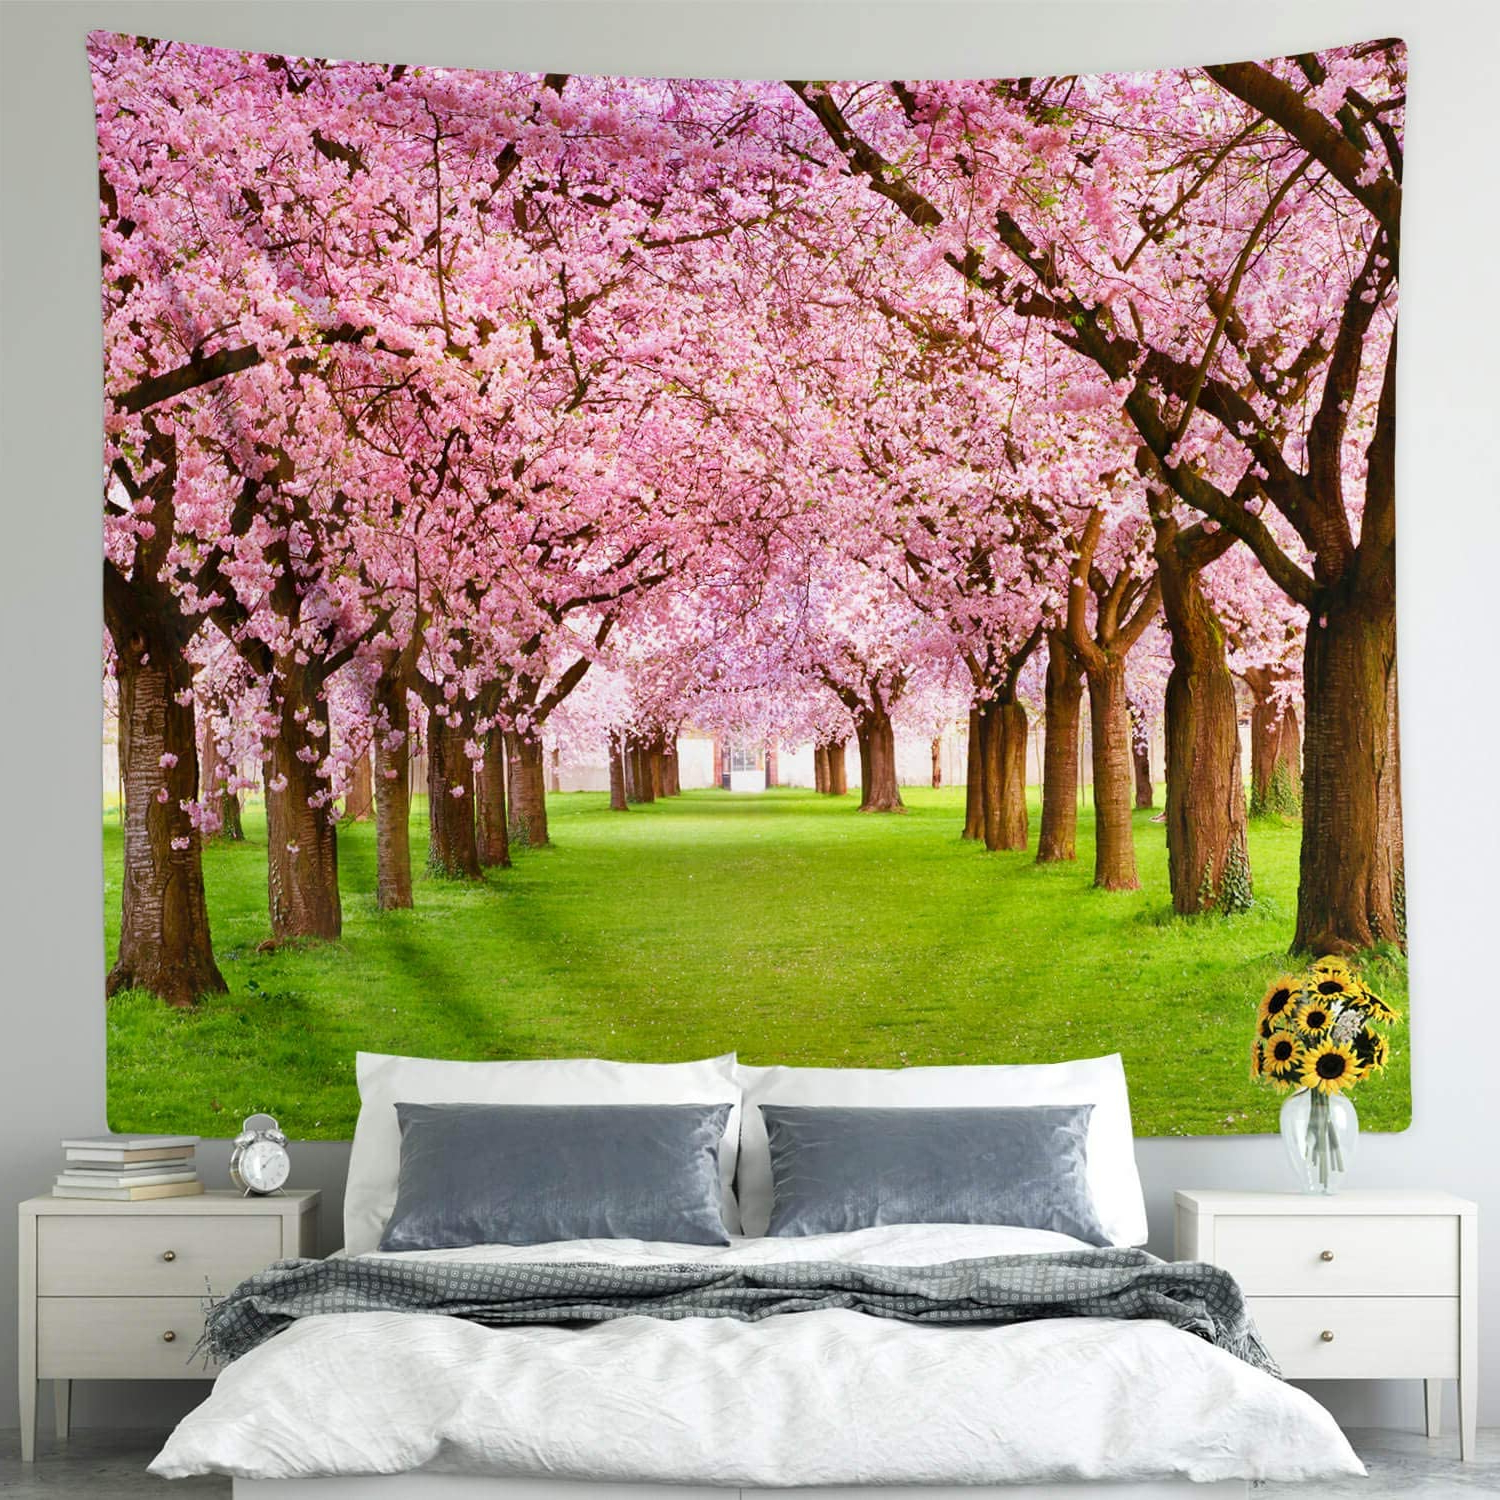 Blended Fabric Spring Blossom Tapestries Within Most Recent Flower Tree Decor Tapestry For Bedroom, Spring Asian Cherry Blossom Nature Scene Wall Tapestry Garden Landscape Wall Hanging For Bedroom Living Room (View 5 of 20)